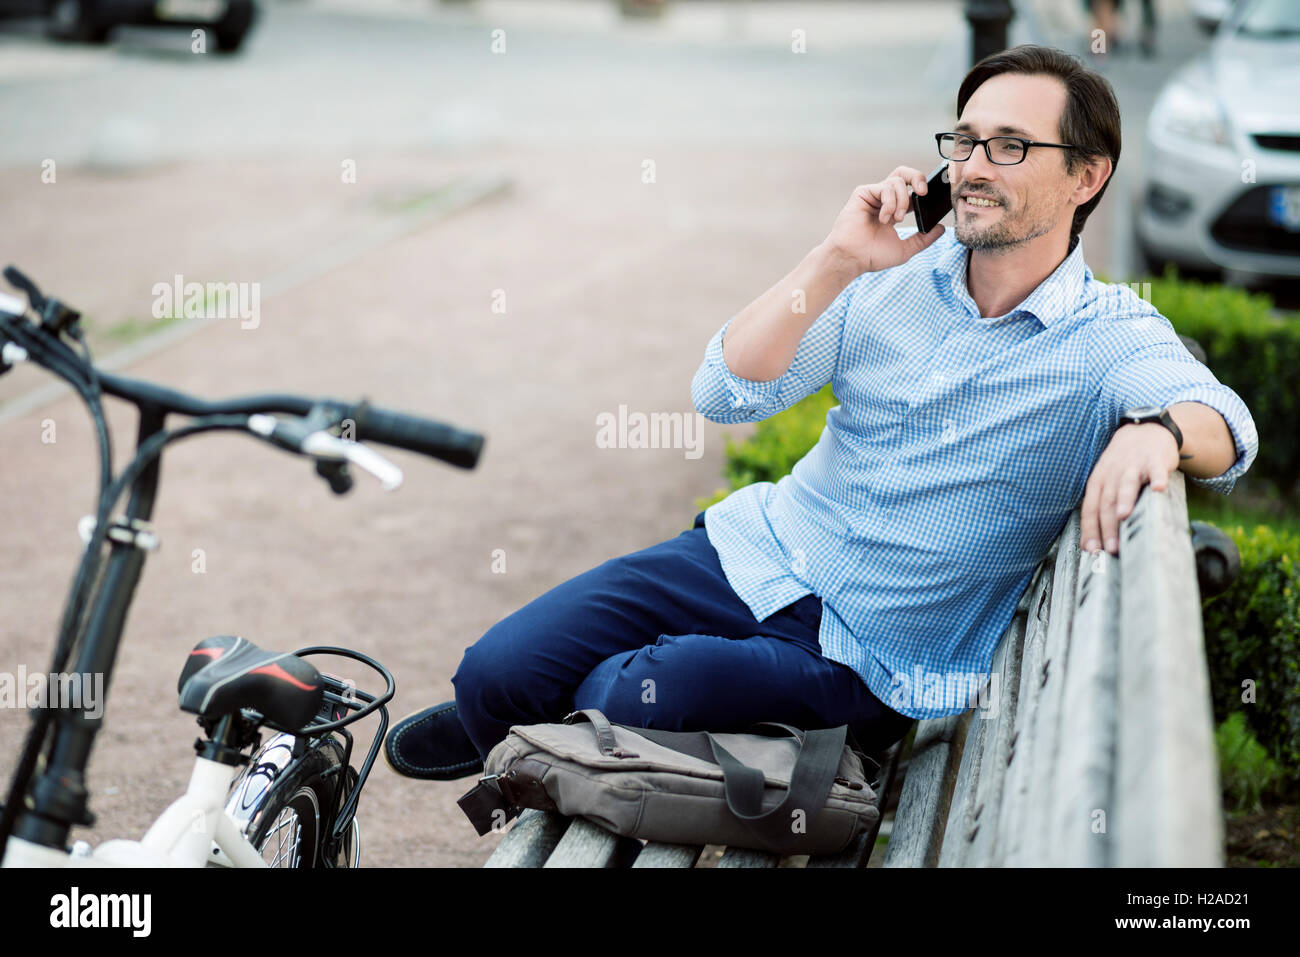 Relaxed bespectacled man speaking on cellphone. - Stock Image